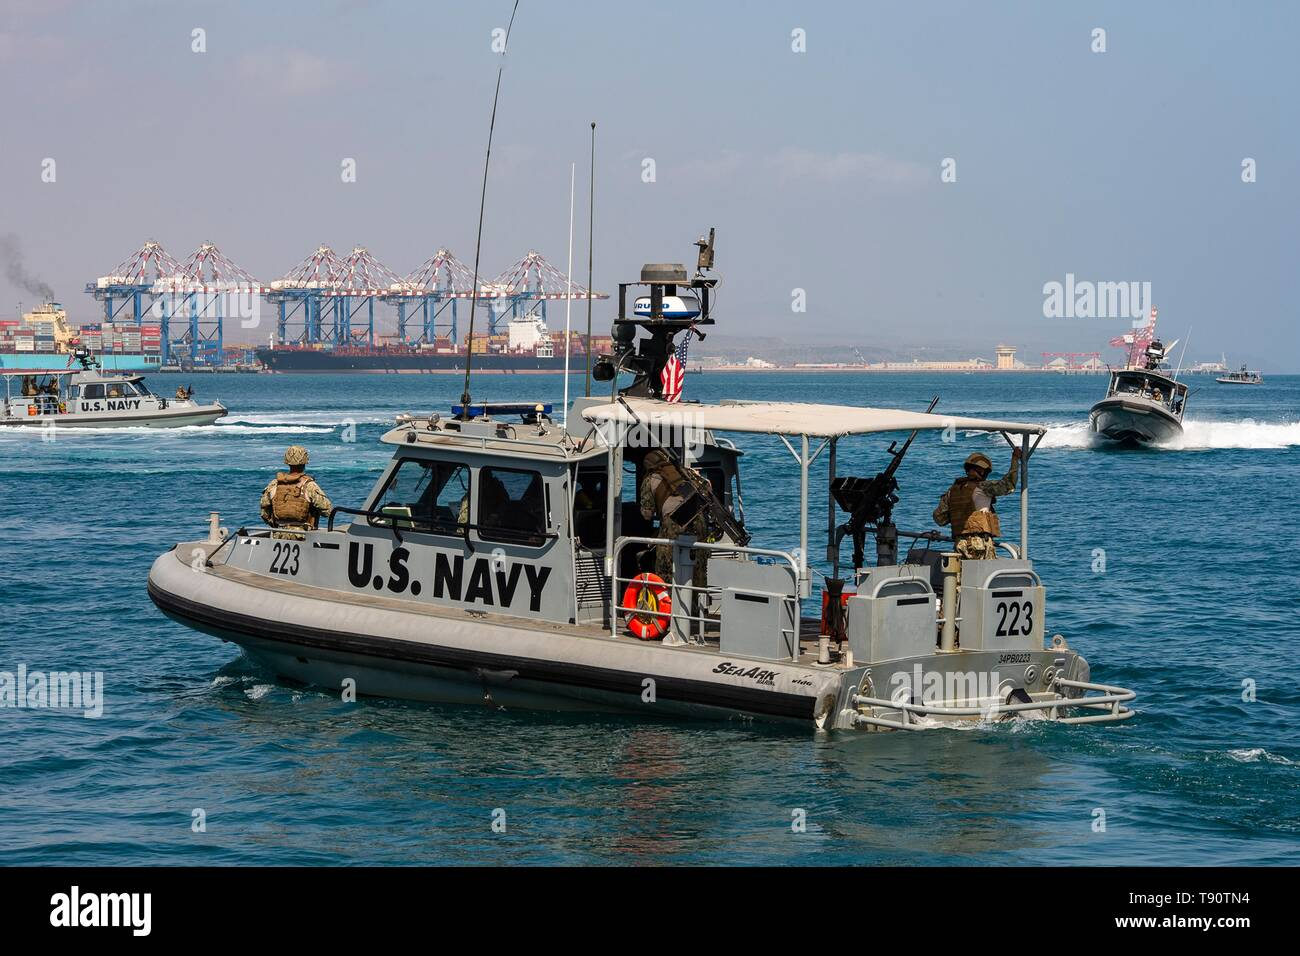 The U.S. Navy Arleigh Burke-class Combined Task Group 68.6 during security exercises in the Port of Djibouti May 12, 2019 in Djibouti. - Stock Image